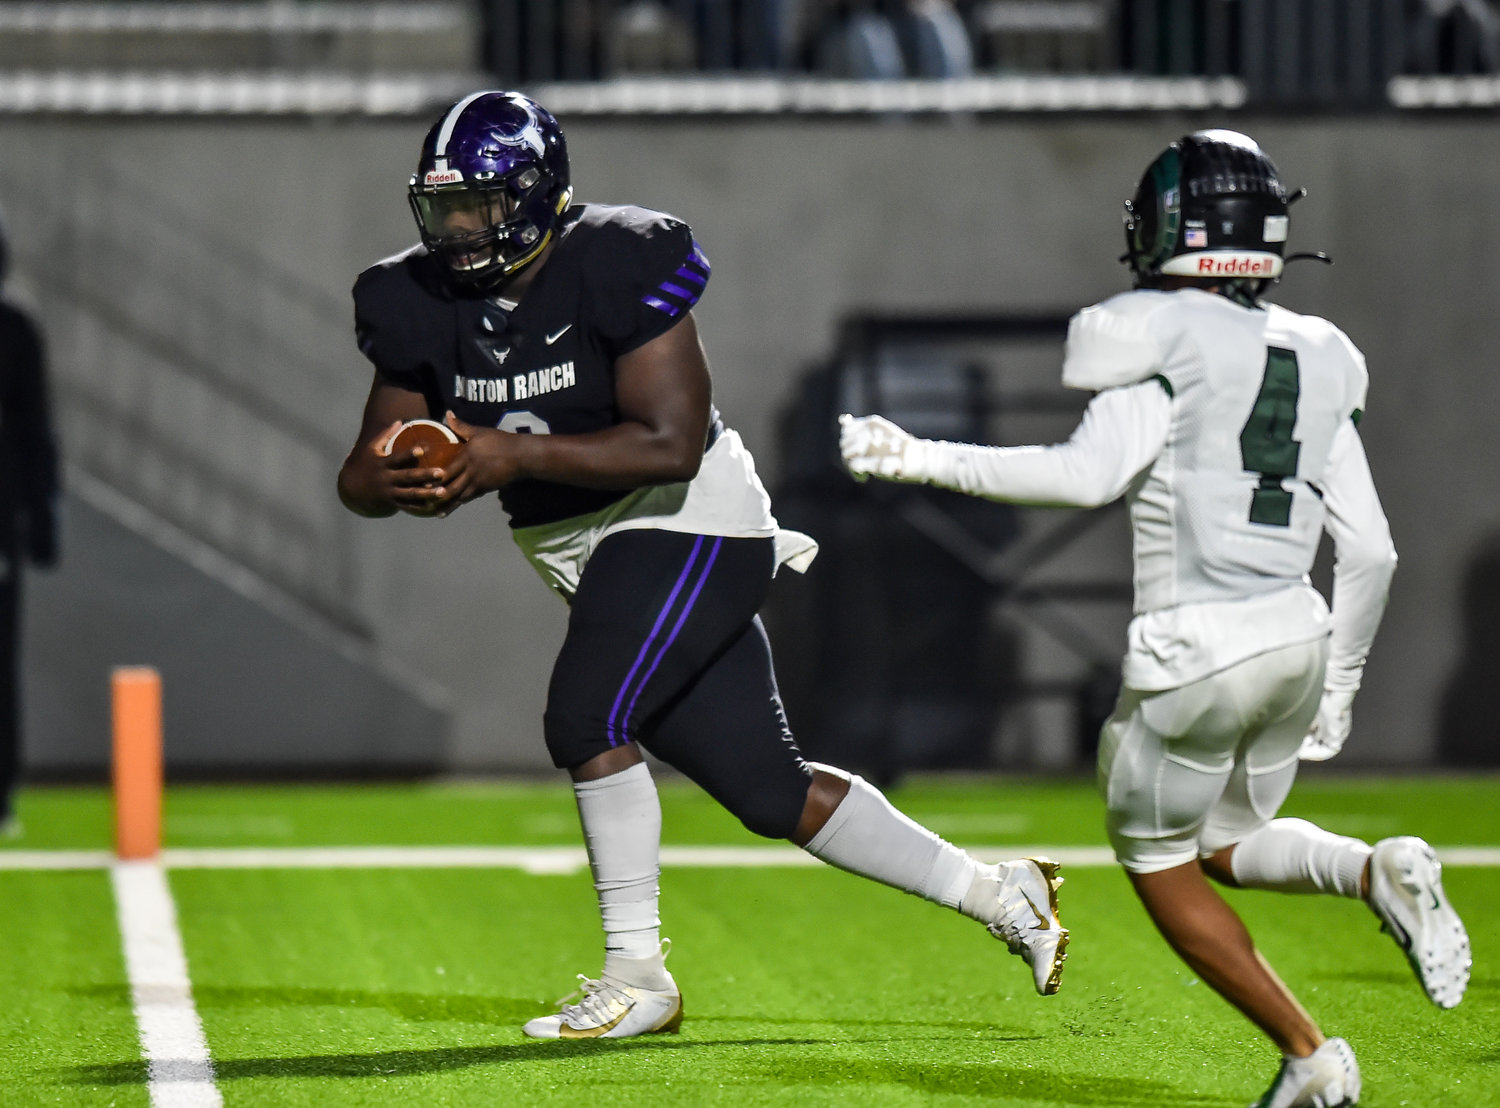 Katy, Tx. Nov. 8, 2019: Morton Ranch's Brandon Brown (9) makes the reception on a fake field goal pulling the Mavericks to with one point just before halftime during a conference game between Morton Ranch Mavericks and Mayde Creek Rams at Legacy Stadium. (Photo by Mark Goodman / Katy Times)